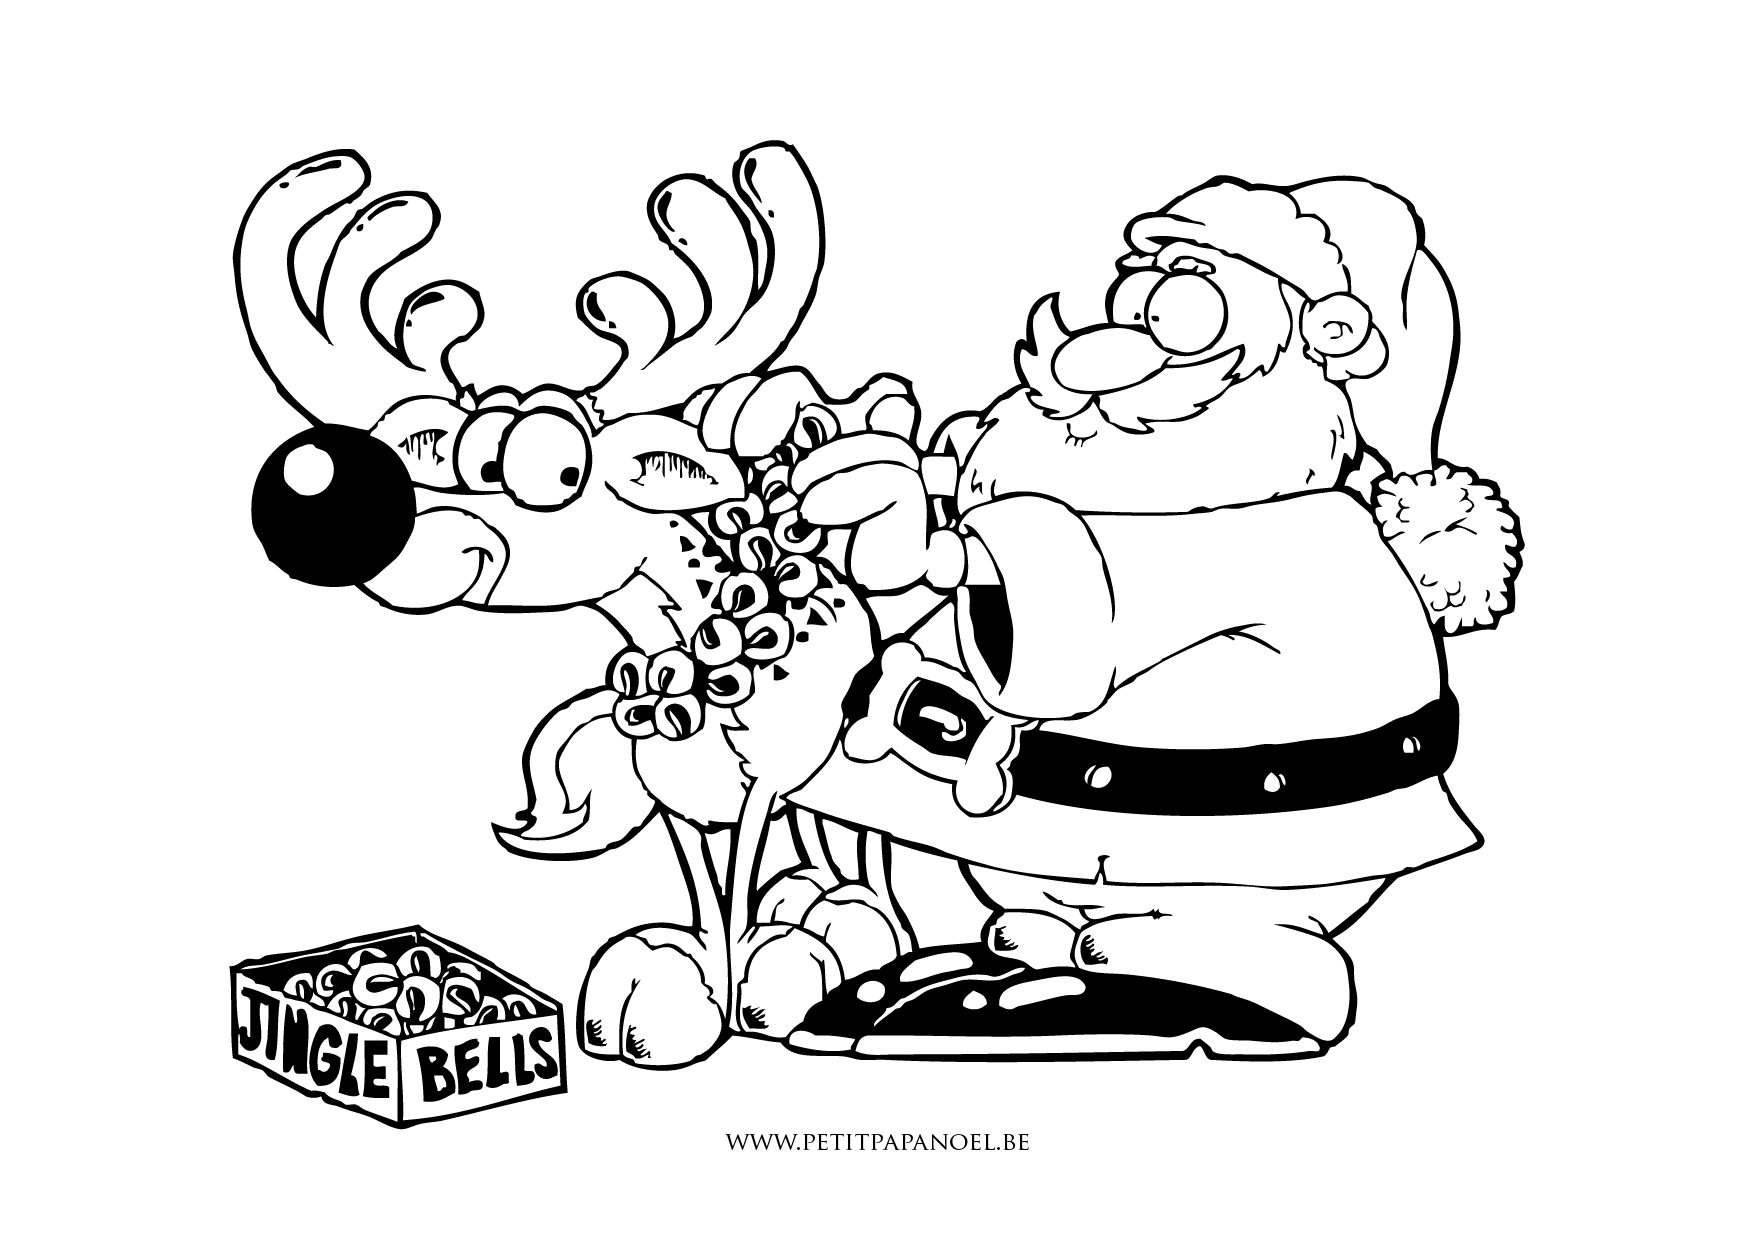 Jeux et coloriage noel - Coloriage de hello kitty sur hugo l escargot ...